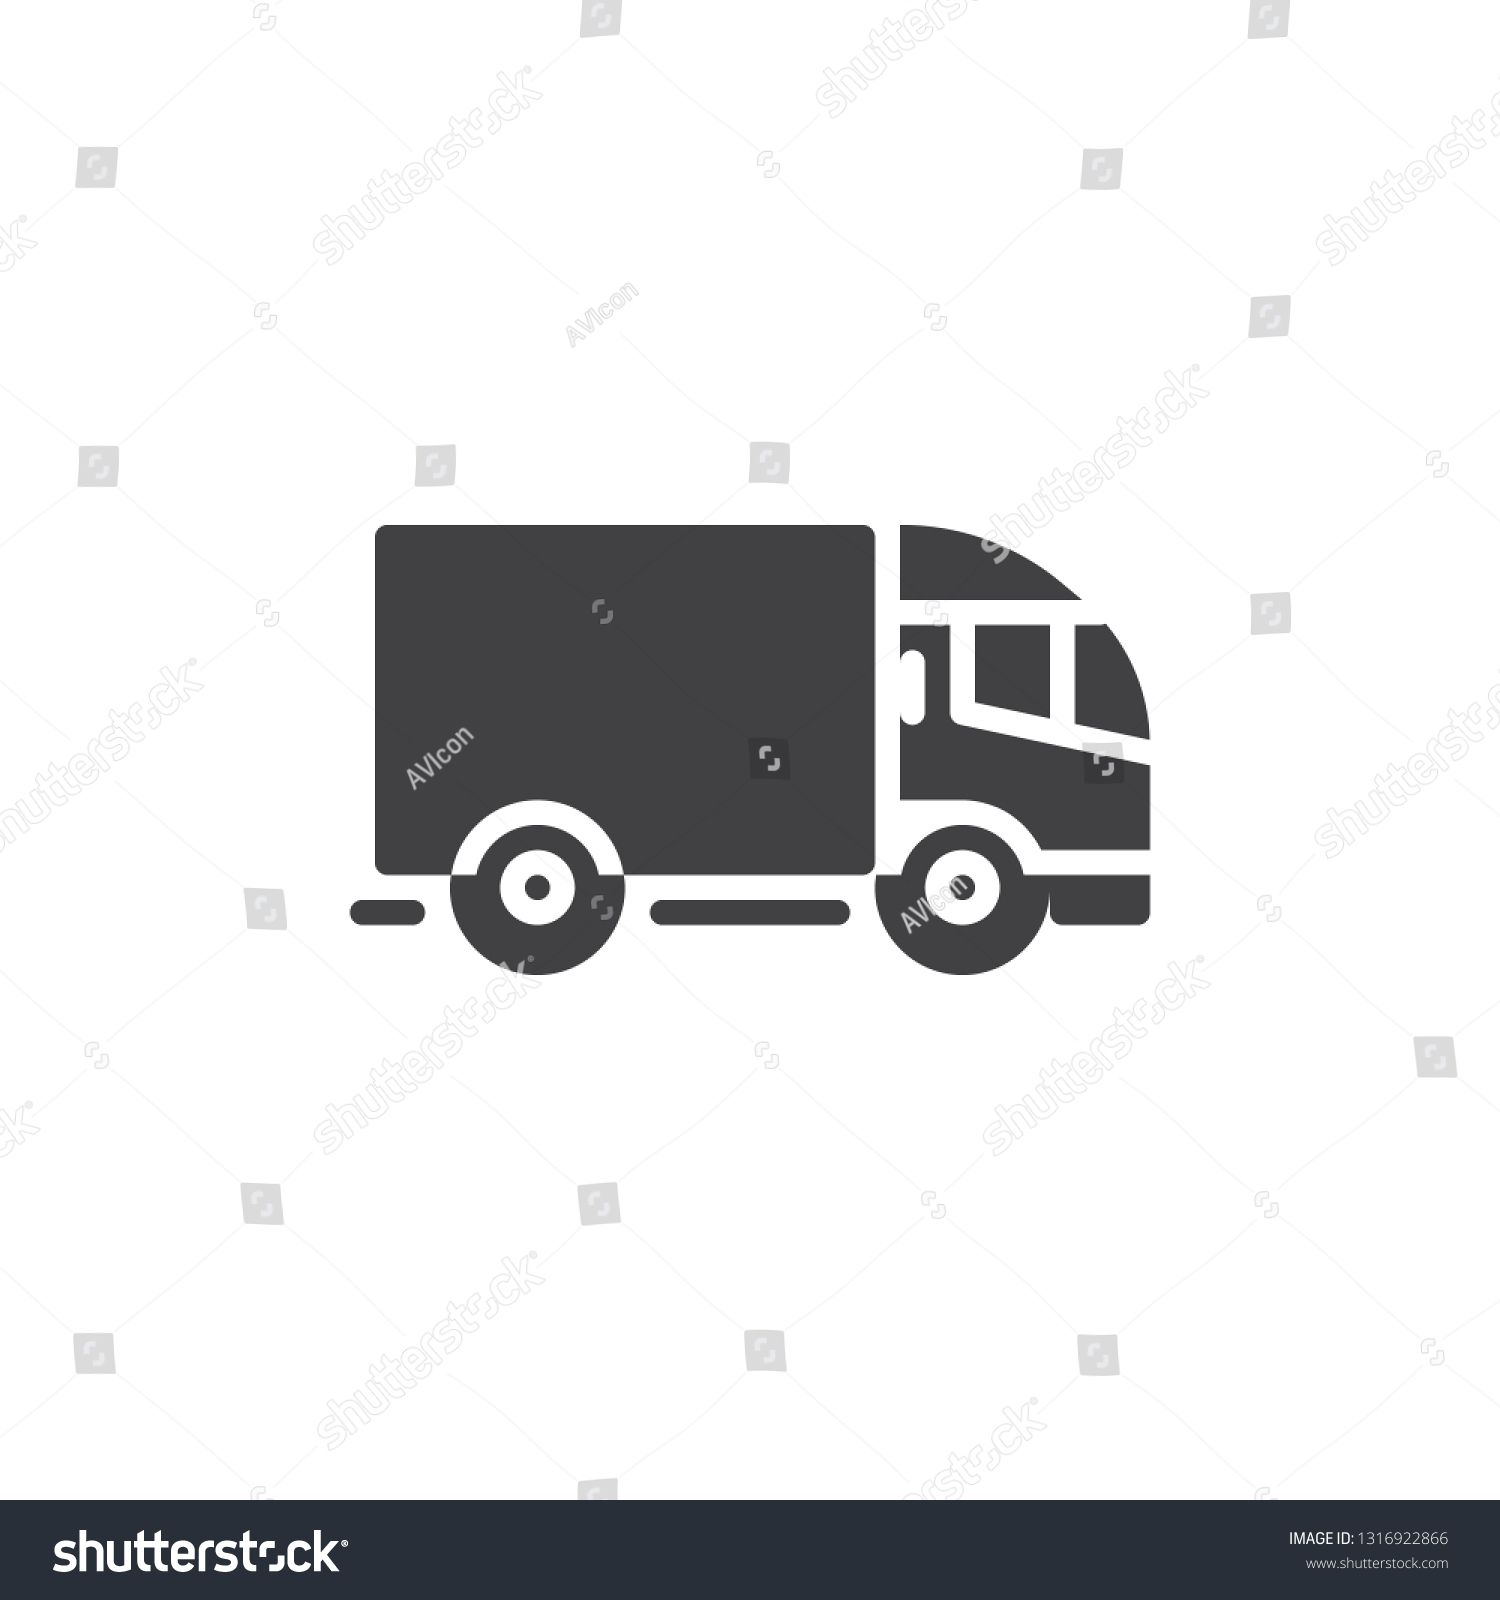 Delivery Truck Vector Icon Filled Flat Sign For Mobile Concept